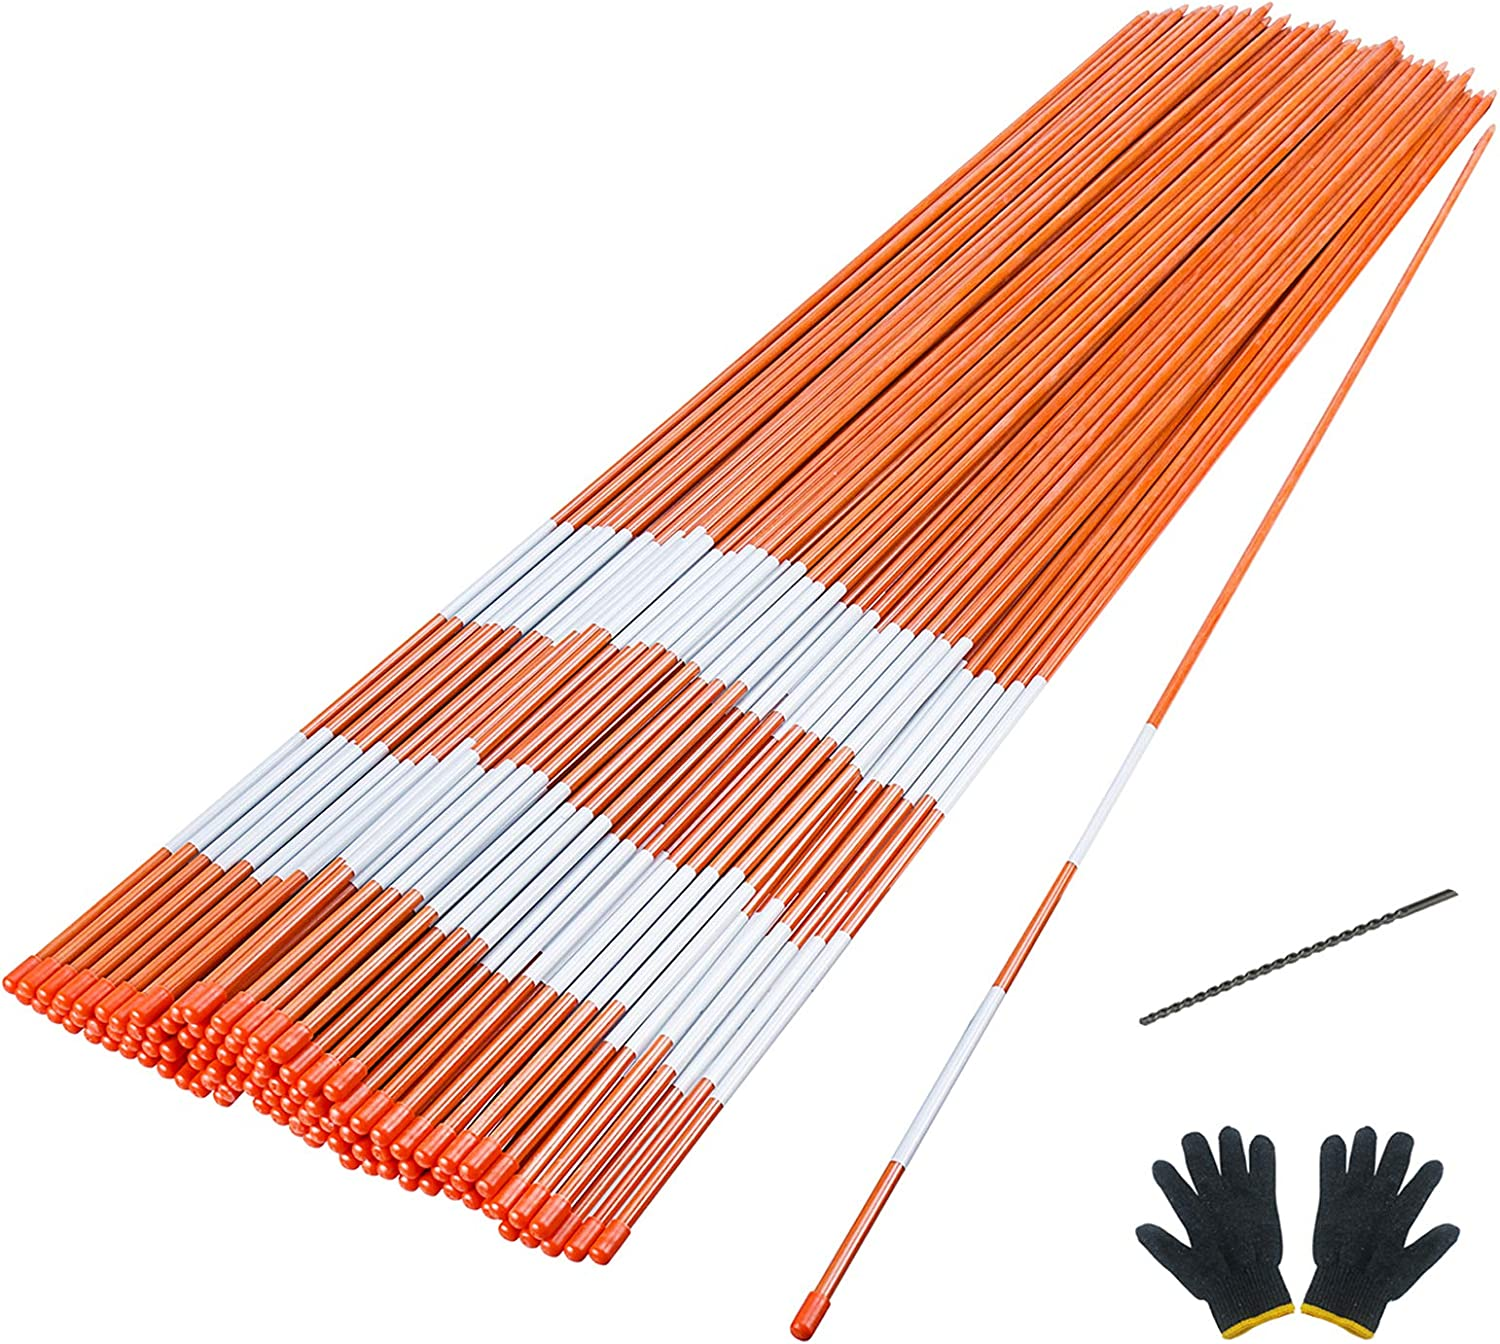 Sturdy Fiberglass Snow Plow Markers with Thick 5//16 Diameter Pack of 24 Driveway Markers 48 Inch Reflective Snow Stakes Driveway Posts with Pointed Ends and Protective Caps